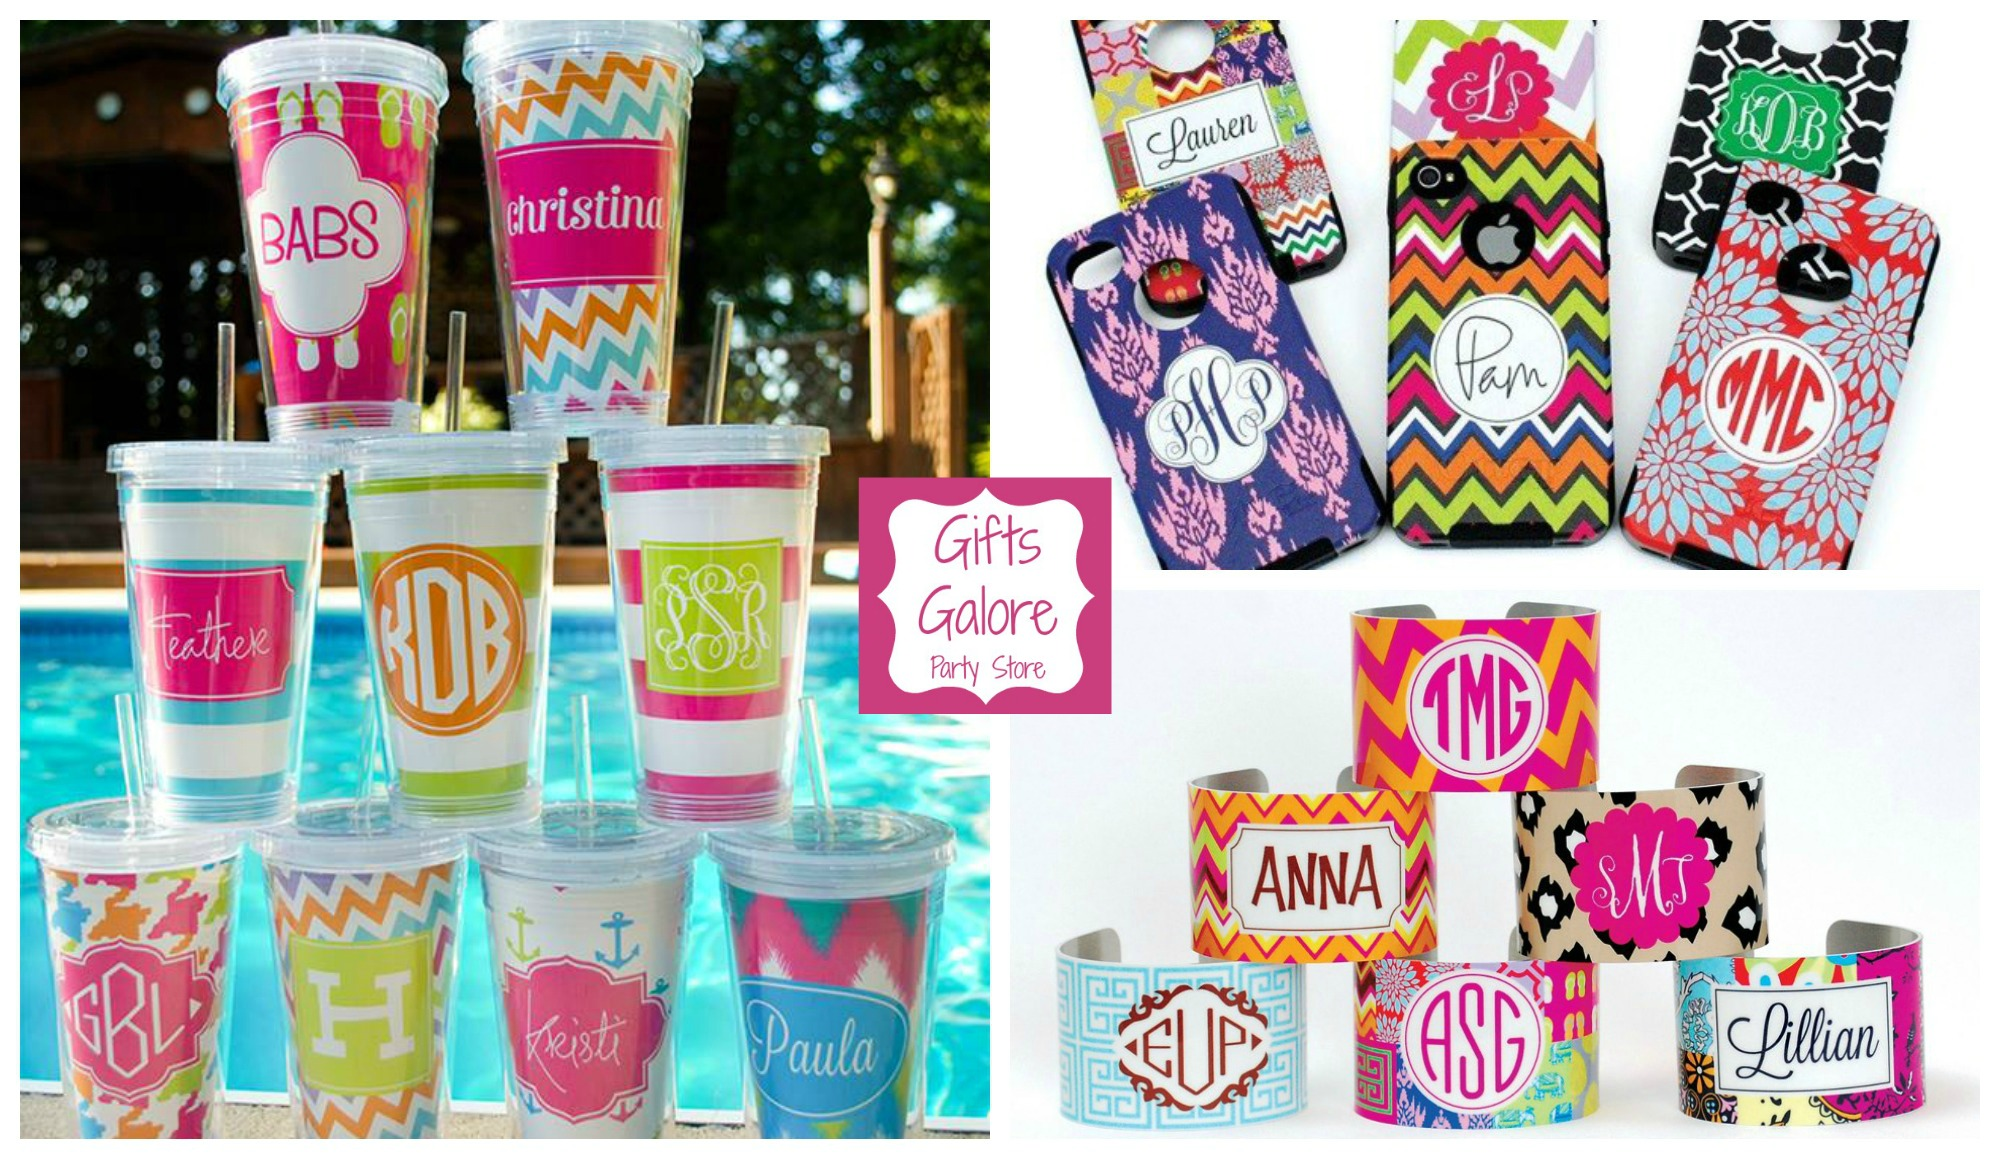 Gifts Galore Party Store | Personalized Gifts and Party Supplies